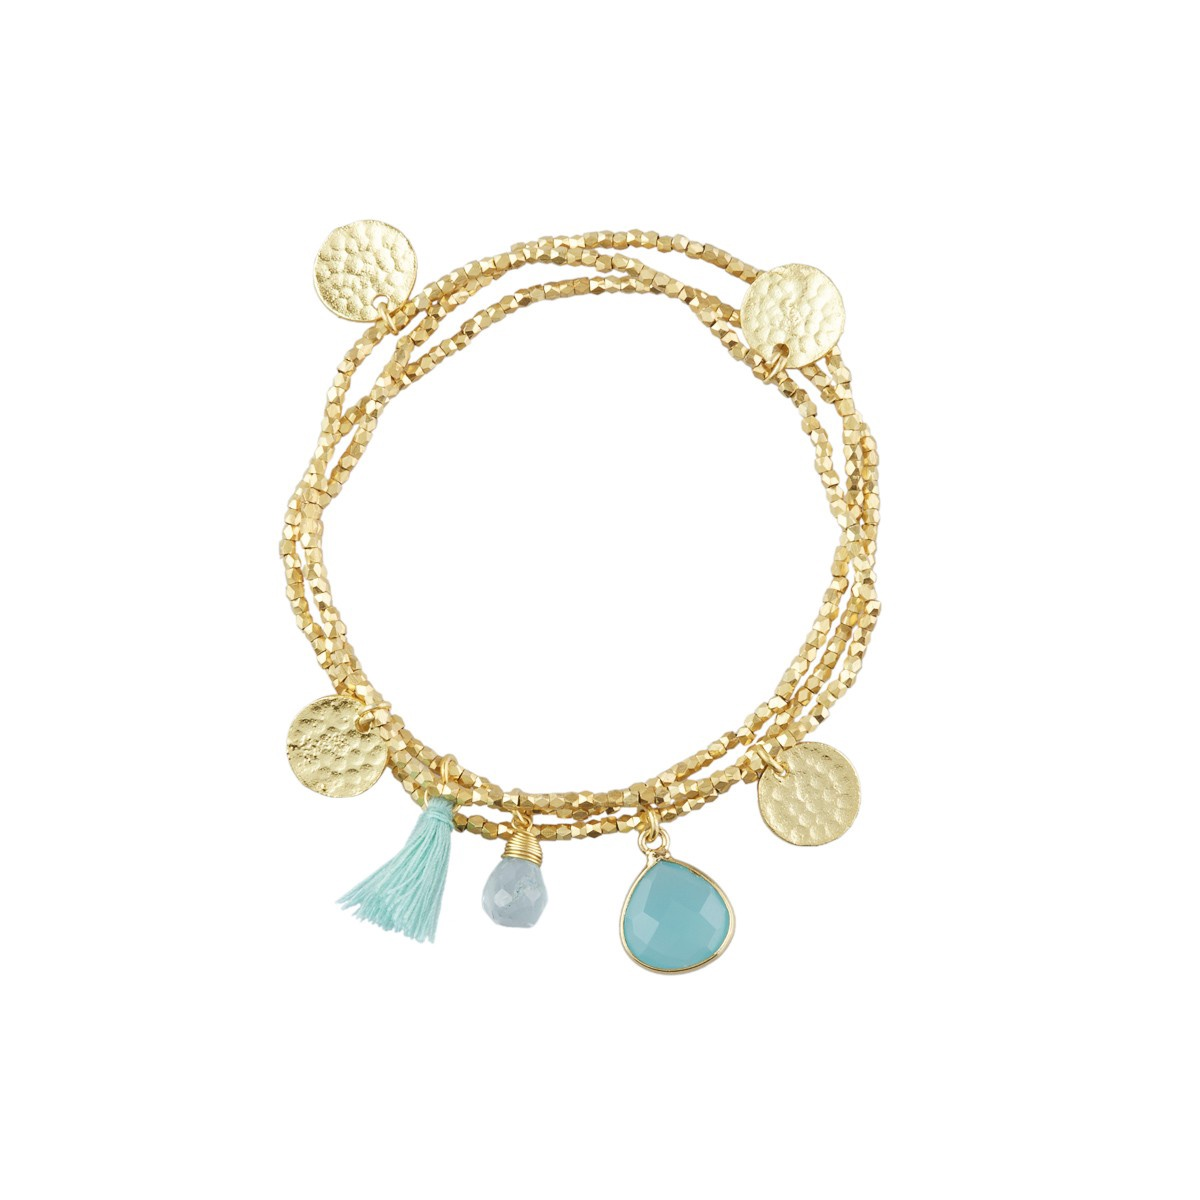 Gemini Charm Bracelet with Aqua Chalcedony Gemstones by Ashiana London